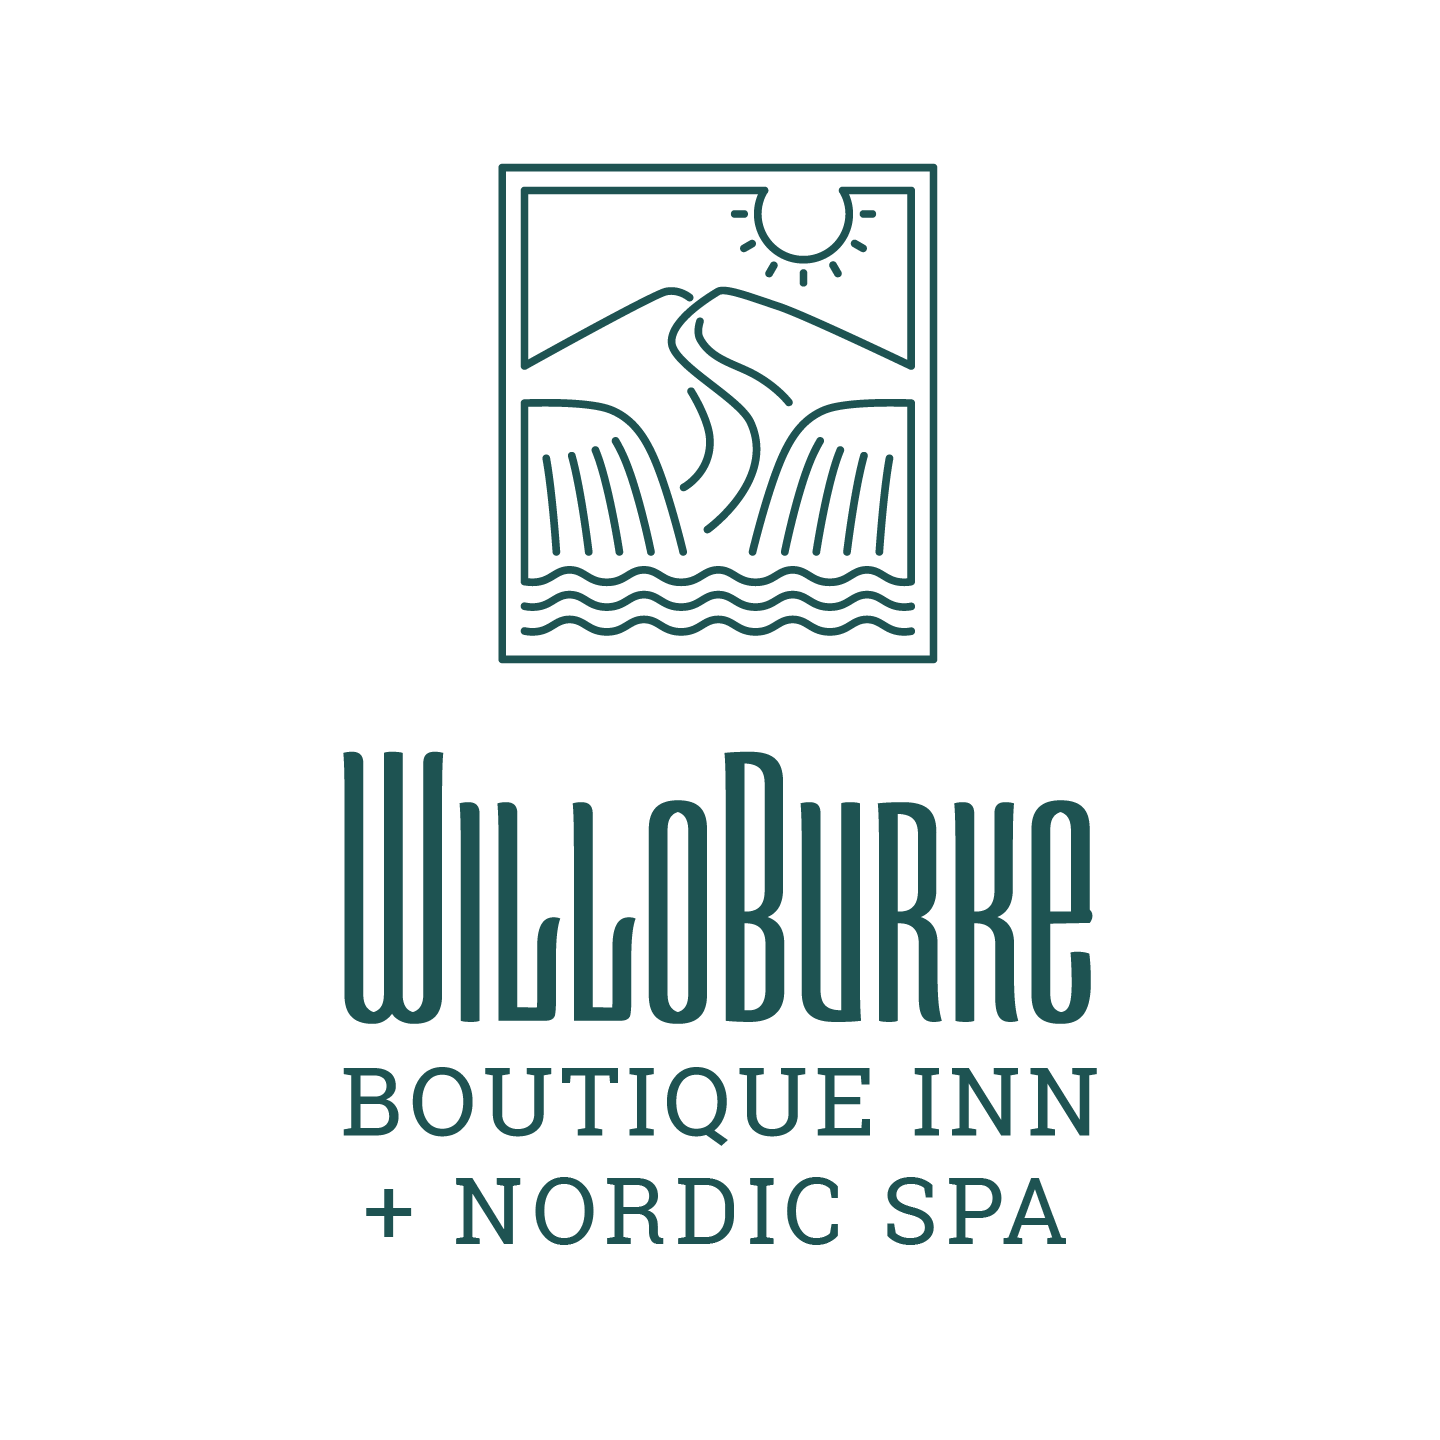 WilloBurke Boutique Inn + Nordic Spa